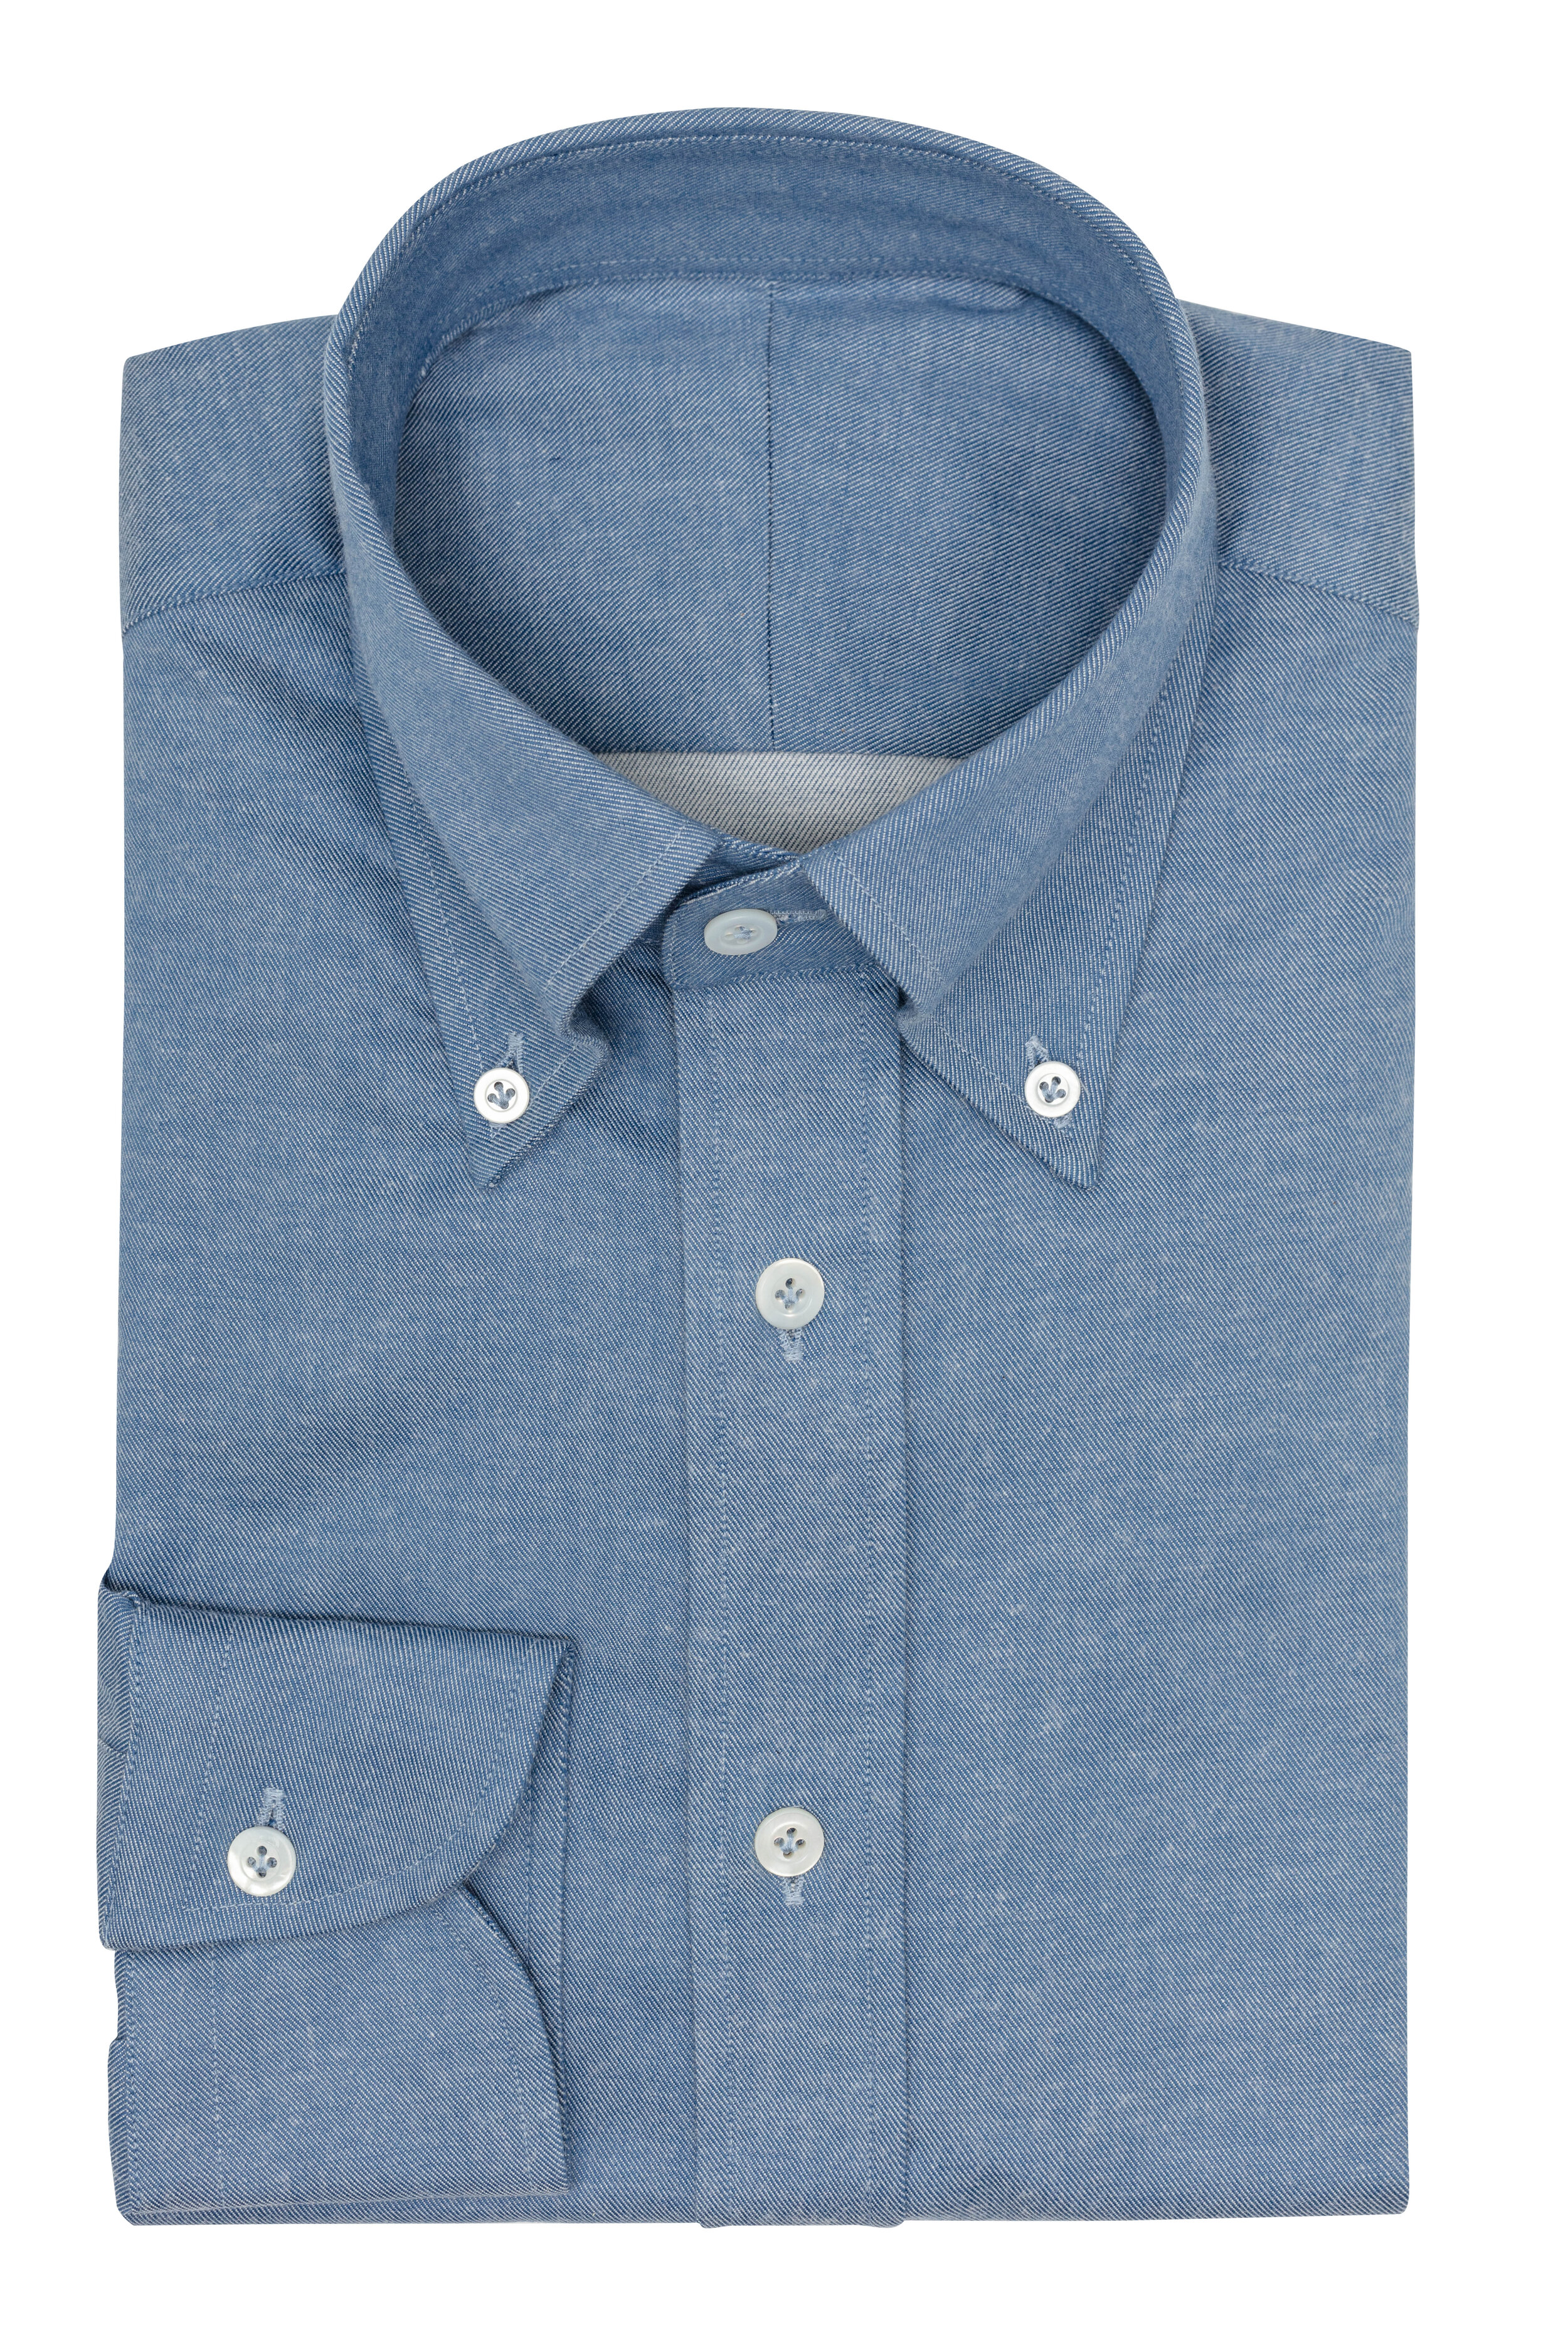 Men S Dress Shirts Hall Madden